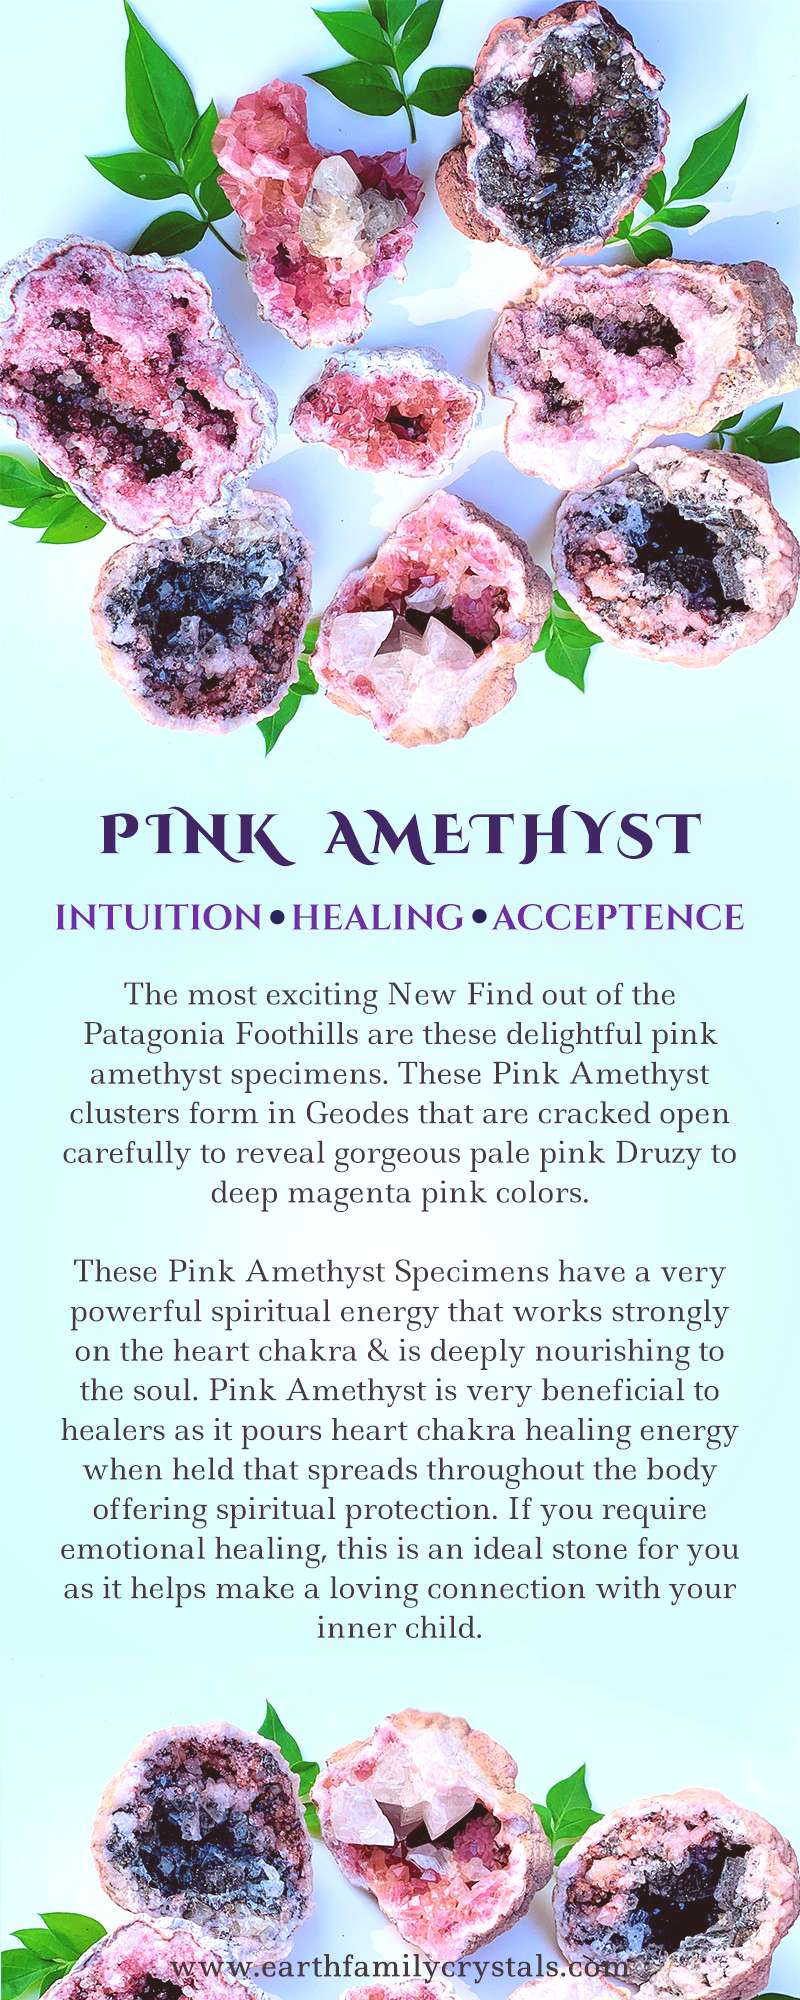 pink amethyst meaning / pink amethyst geode / pink amethyst benefits / pink amethyst crystal / pink